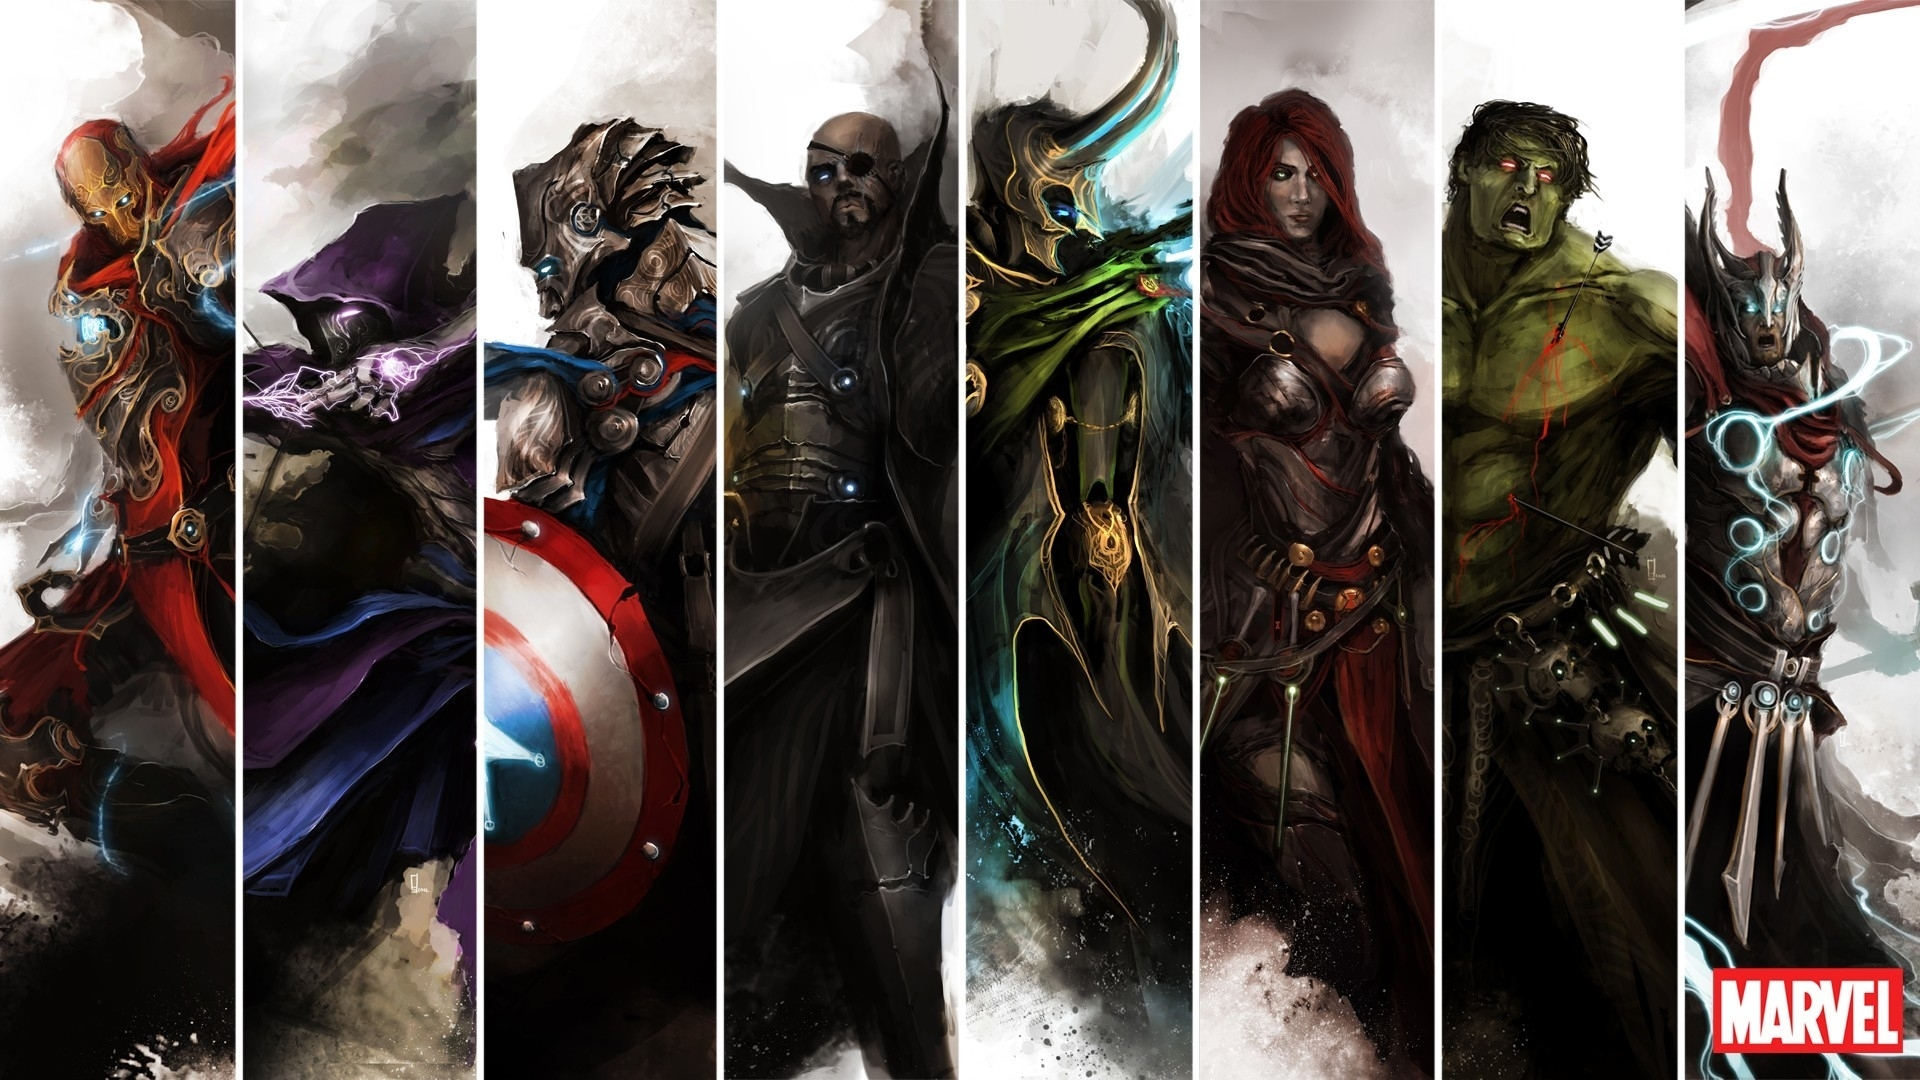 10 New Marvel Wallpaper Hd 1920X1080 FULL HD 1920×1080 For PC Background